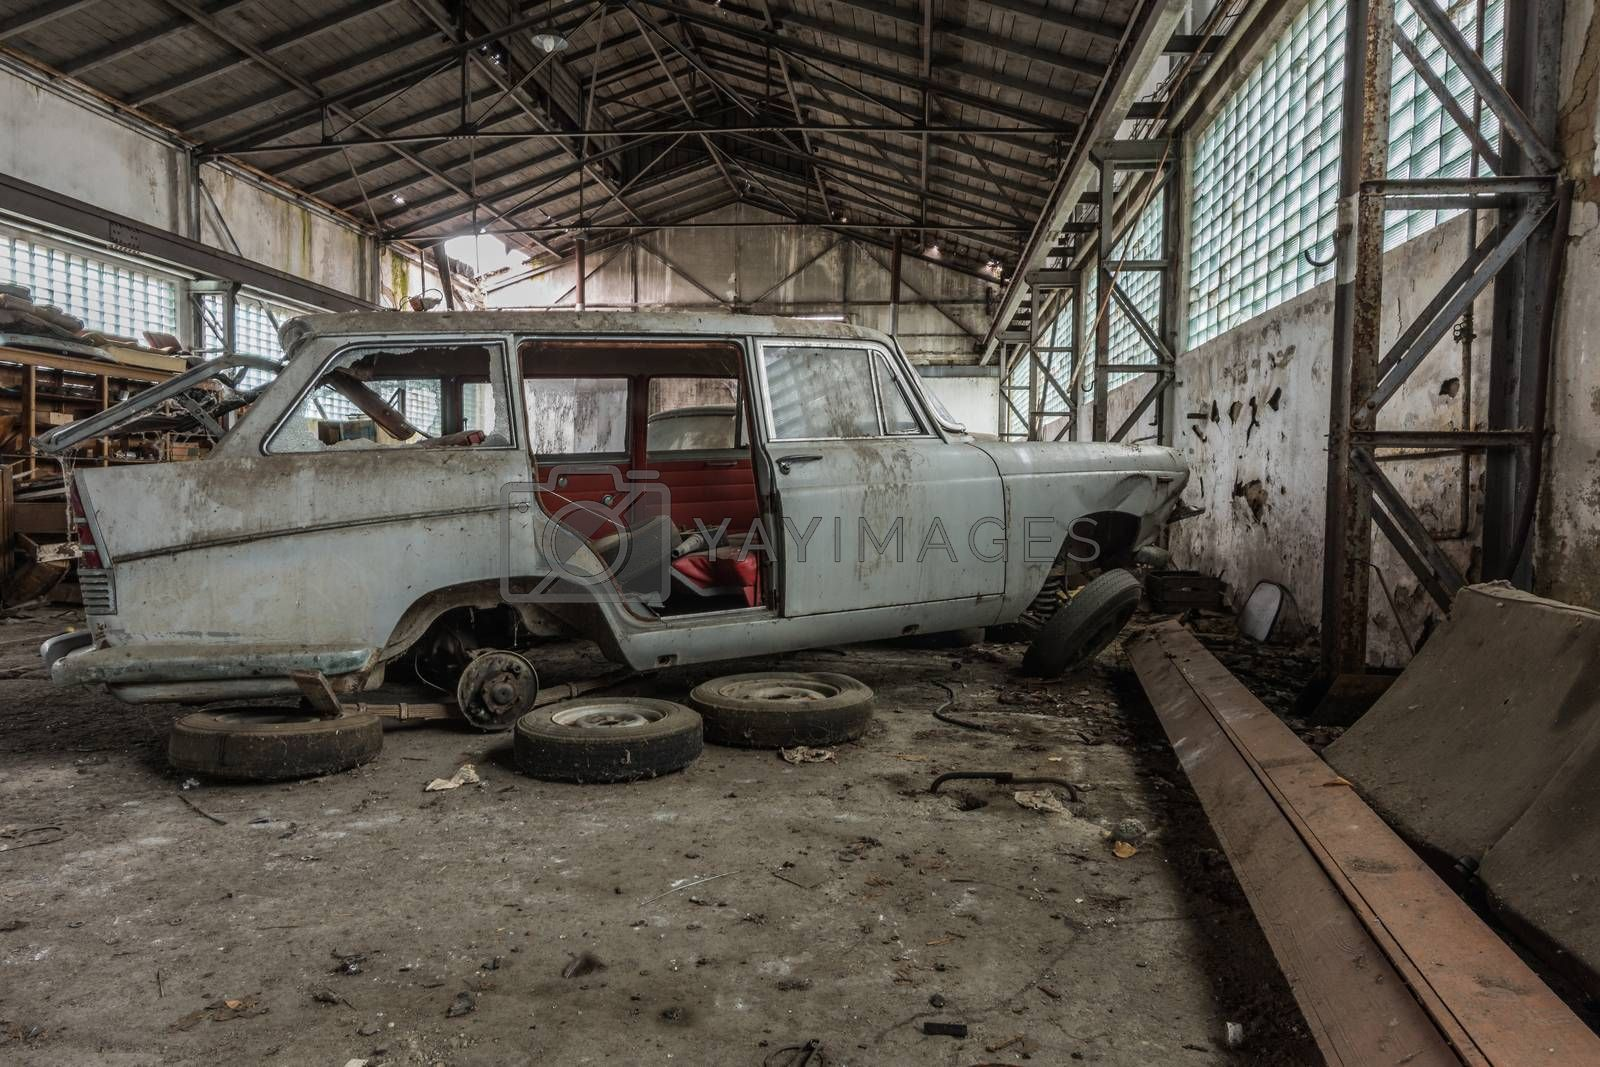 Disassembled car in a hall side view